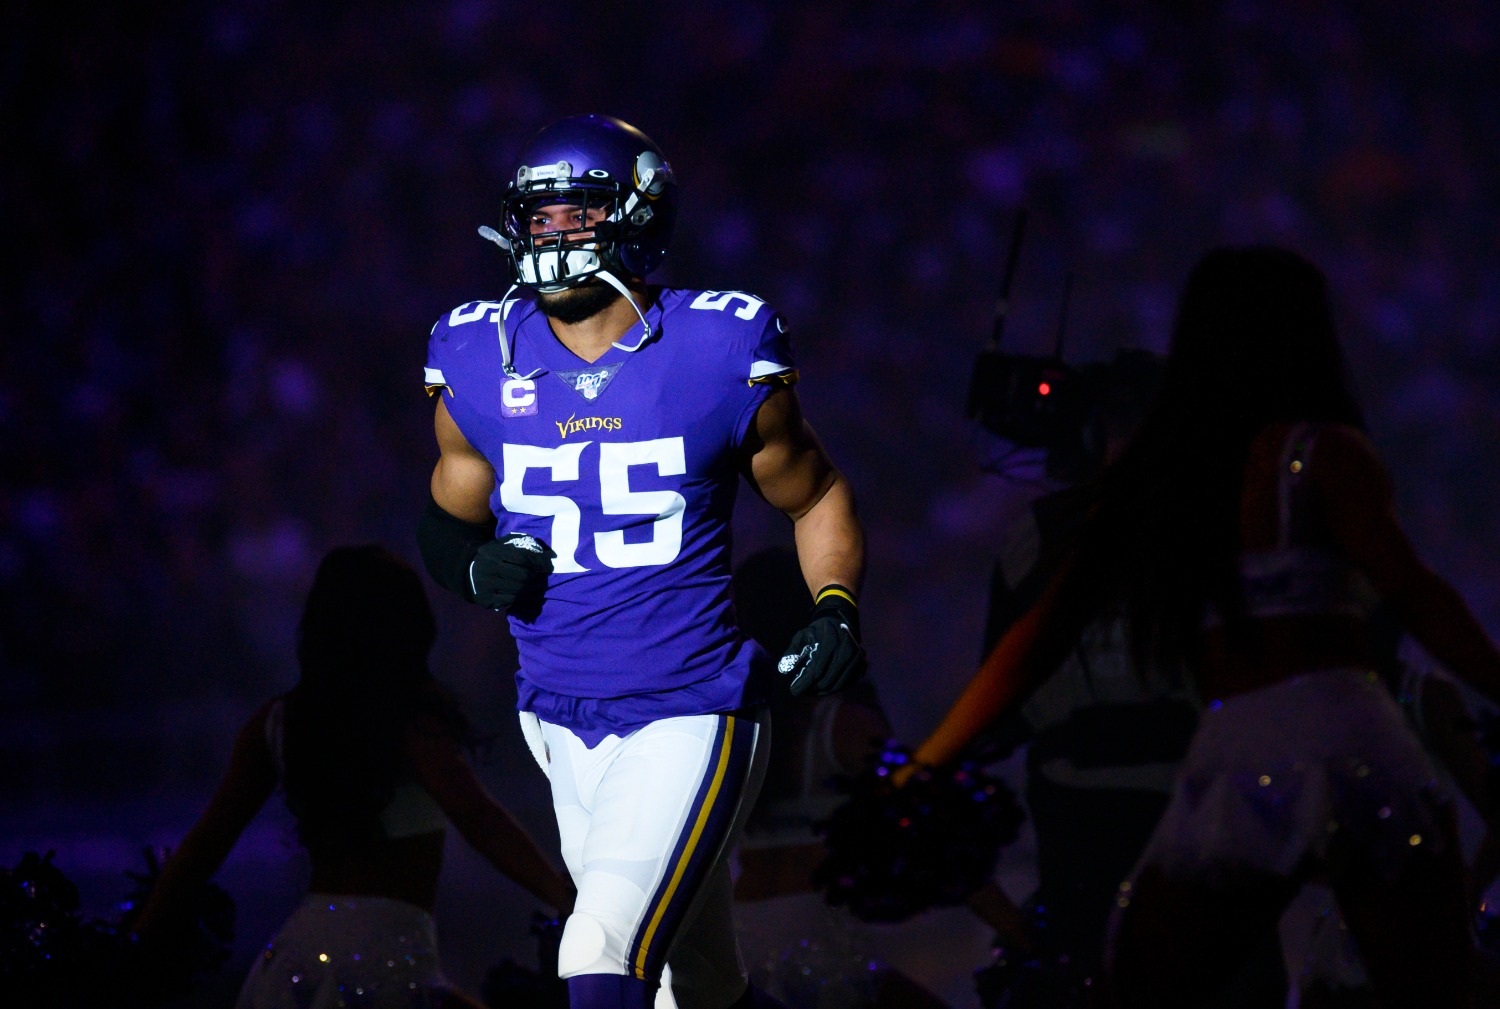 Highly-paid linebacker Anthony Barr suffered a season-ending injury on Sunday that will force a Vikings rookie to step up in his absence.